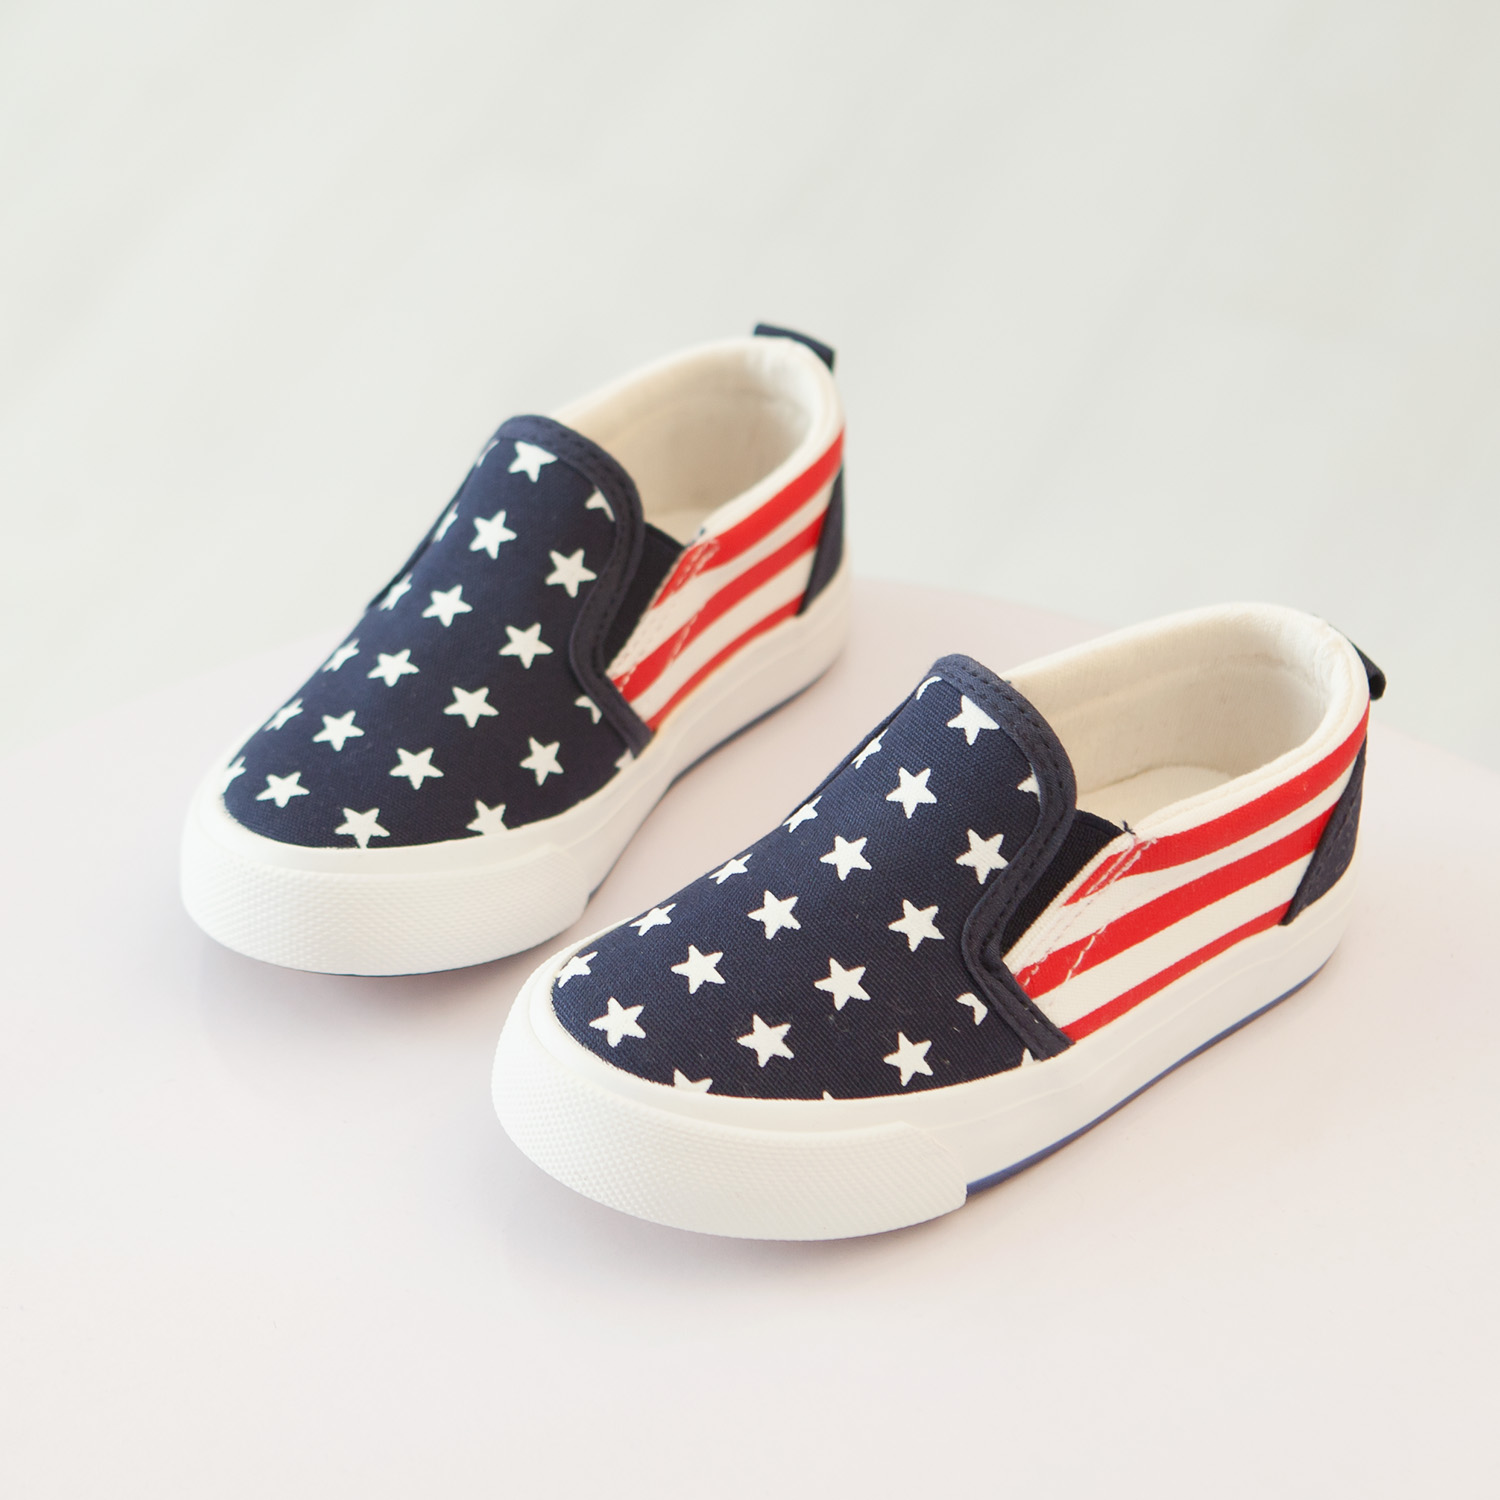 b87d73df7ad Kids shoes boys girls shoes breathable star pattern kids canvas shoes girls  fashion striped girls loafers kids-in Sneakers from Mother   Kids on ...